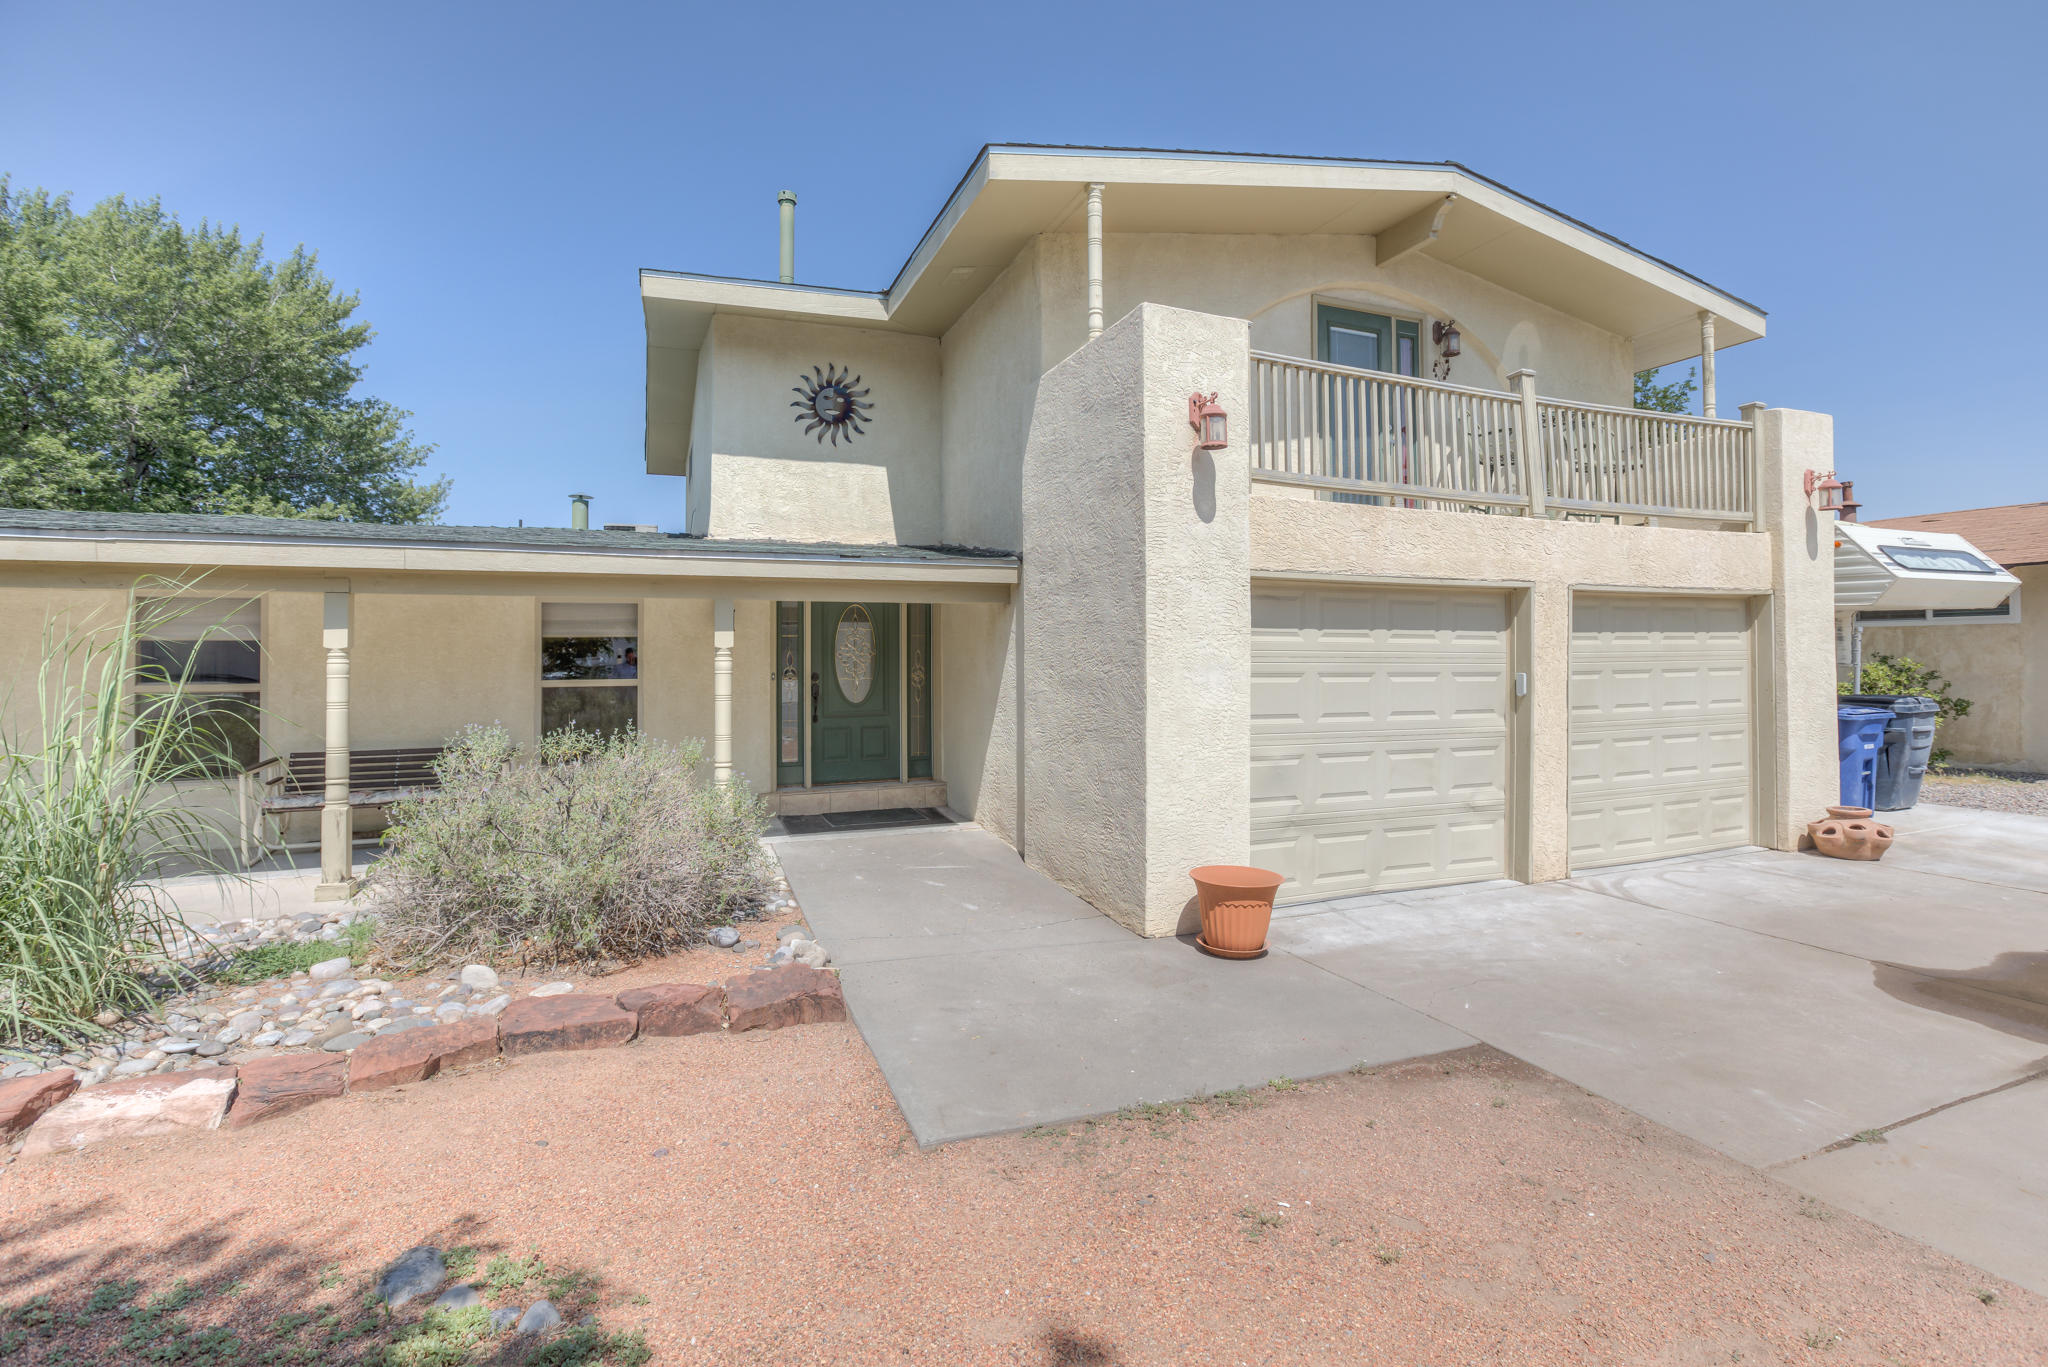 With a little TLC, this could be a Gem! Two Master Bedrooms, both with walk-in closets, MBR (20x9) on second floor and one MBR (19x14.5) main floor. Main floor large Master Bath w/beautiful snail shower. Upstairs MBR w/balcony. Two living areas. Main floor living room and additional sitting room or second living space leads you to the Kitchen. Lots of counter space, pantry, built in desk, and bar area, will surly bring out your inner chef. Main floor office or possible additional bedroom.  Two heating and cooling units and a new roof, replaced in April 2021. The large back yard is perfect for those summer parties with all your friends. Plenty of room for all your toys, with two driveway RV pads both on north and south side of the home. Plus backyard access possible.